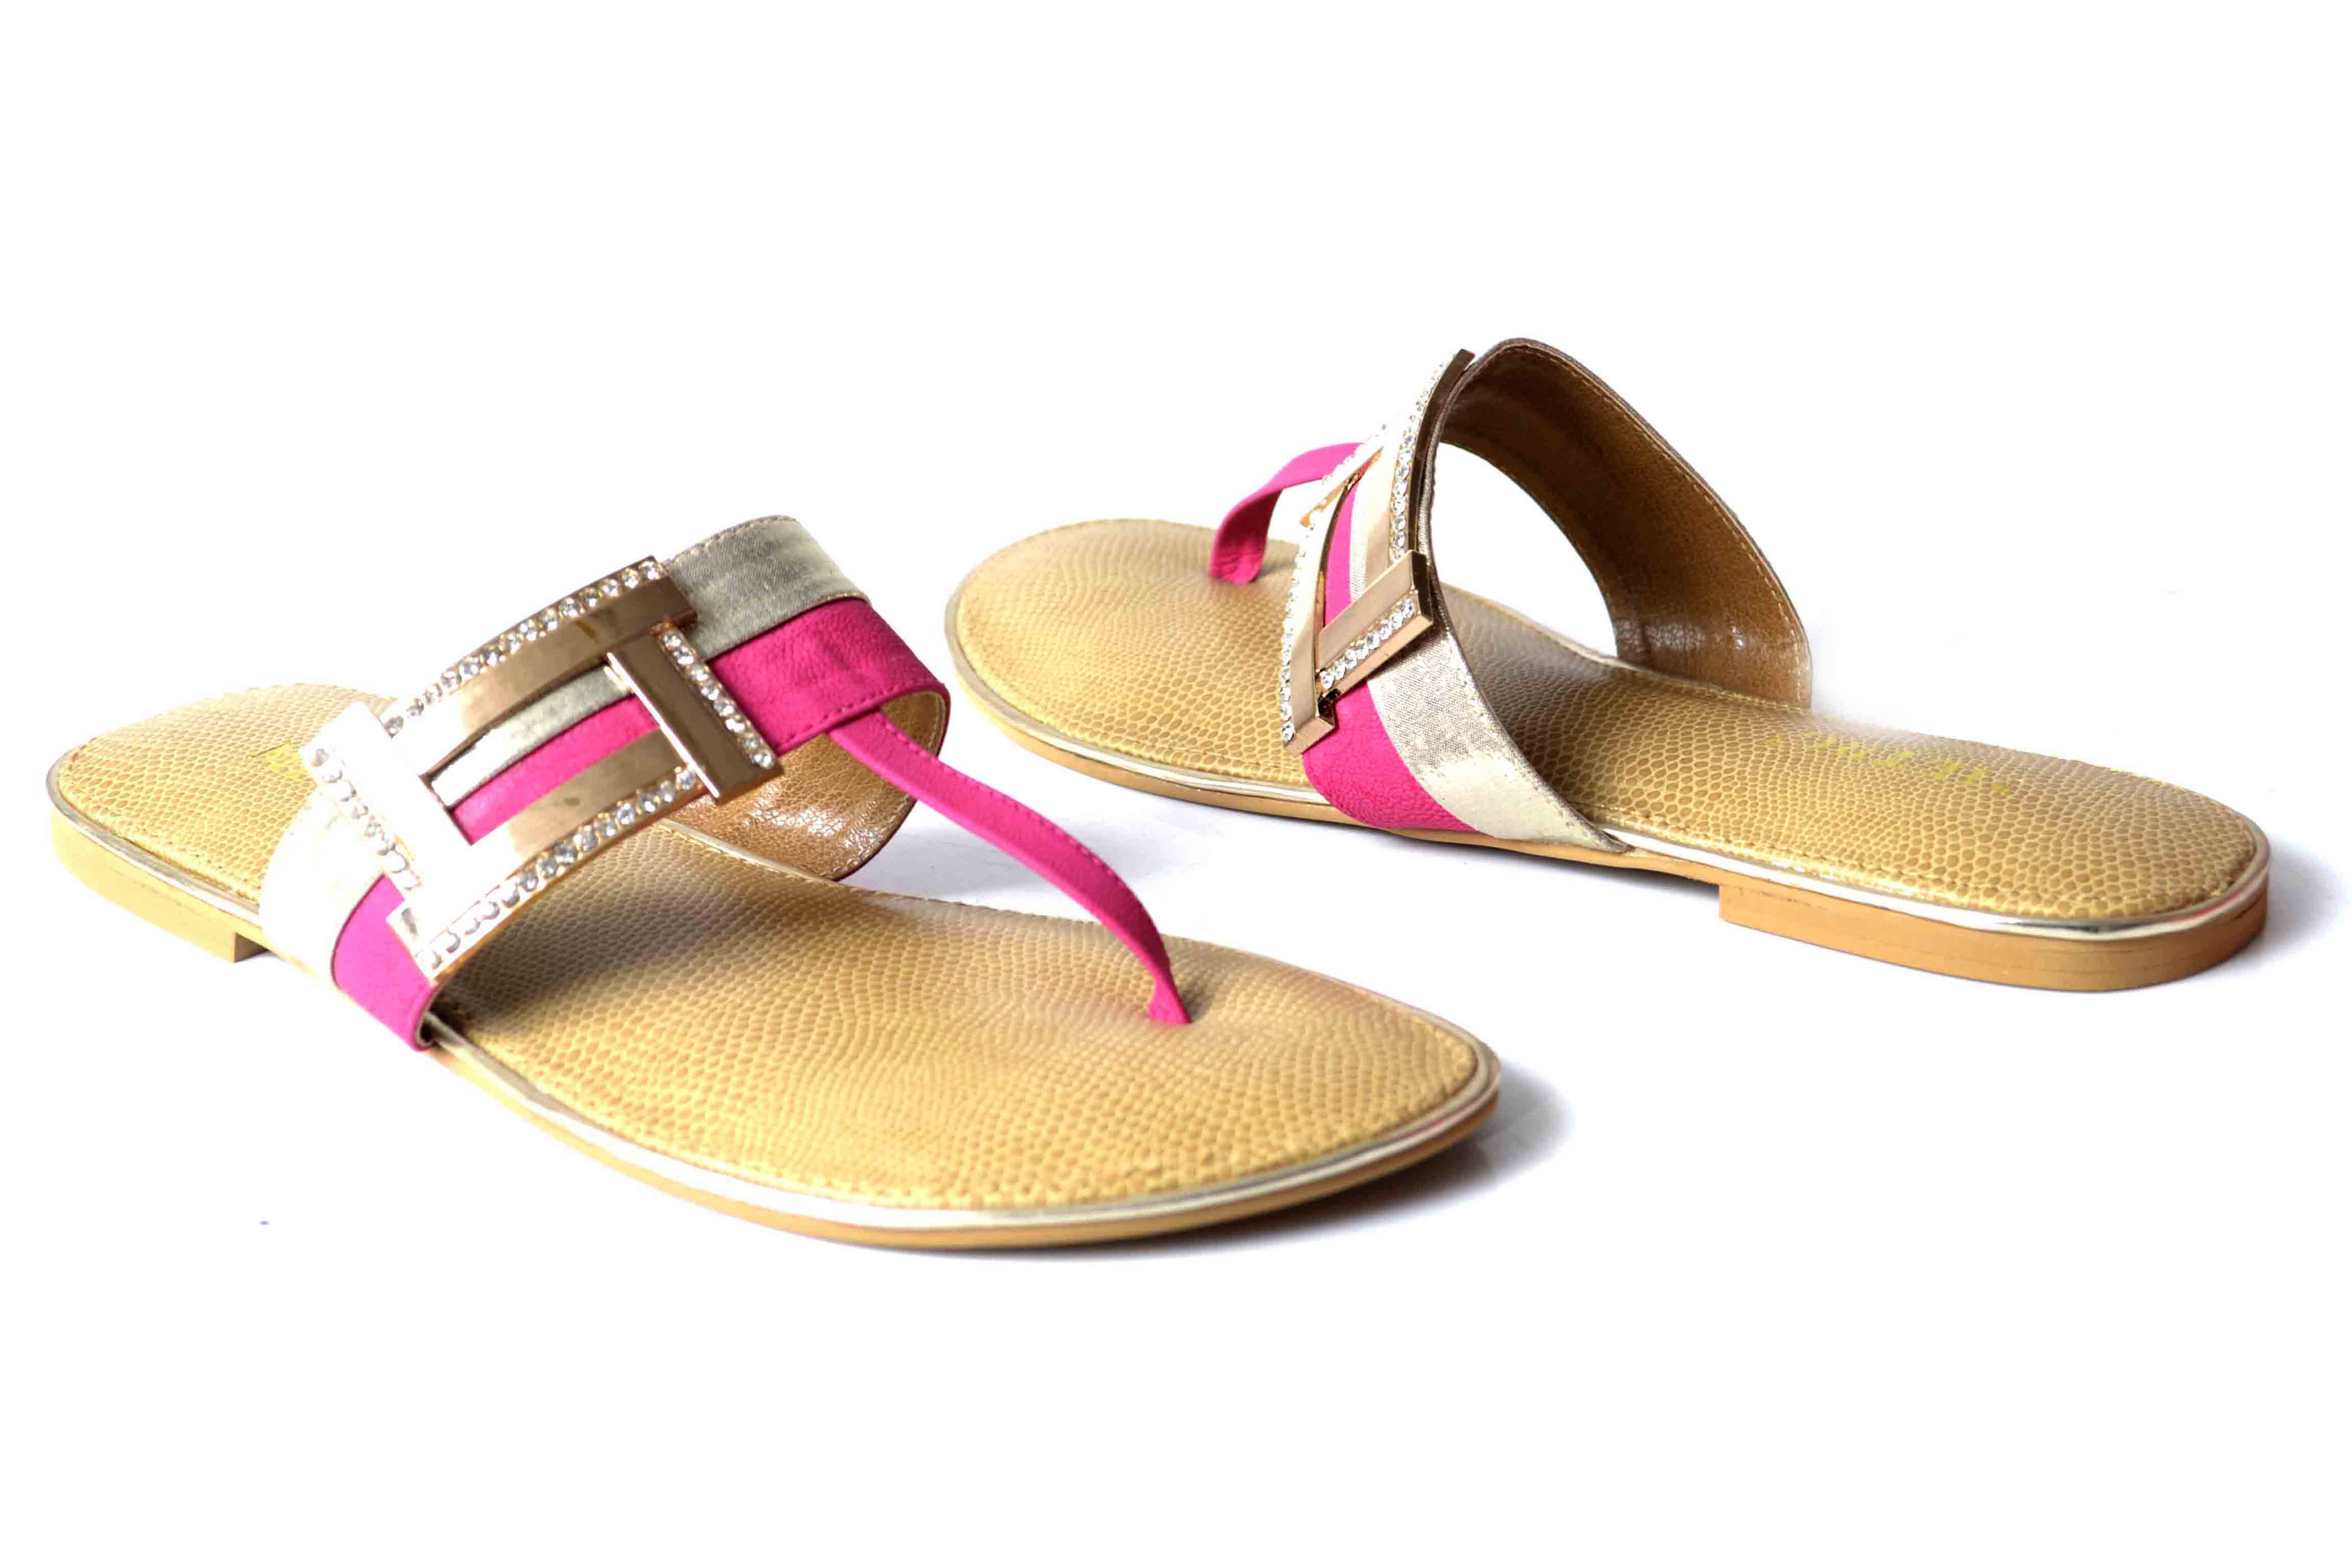 Metro-Shoes-Spring-Summer-Collection-2015-2016 (29)